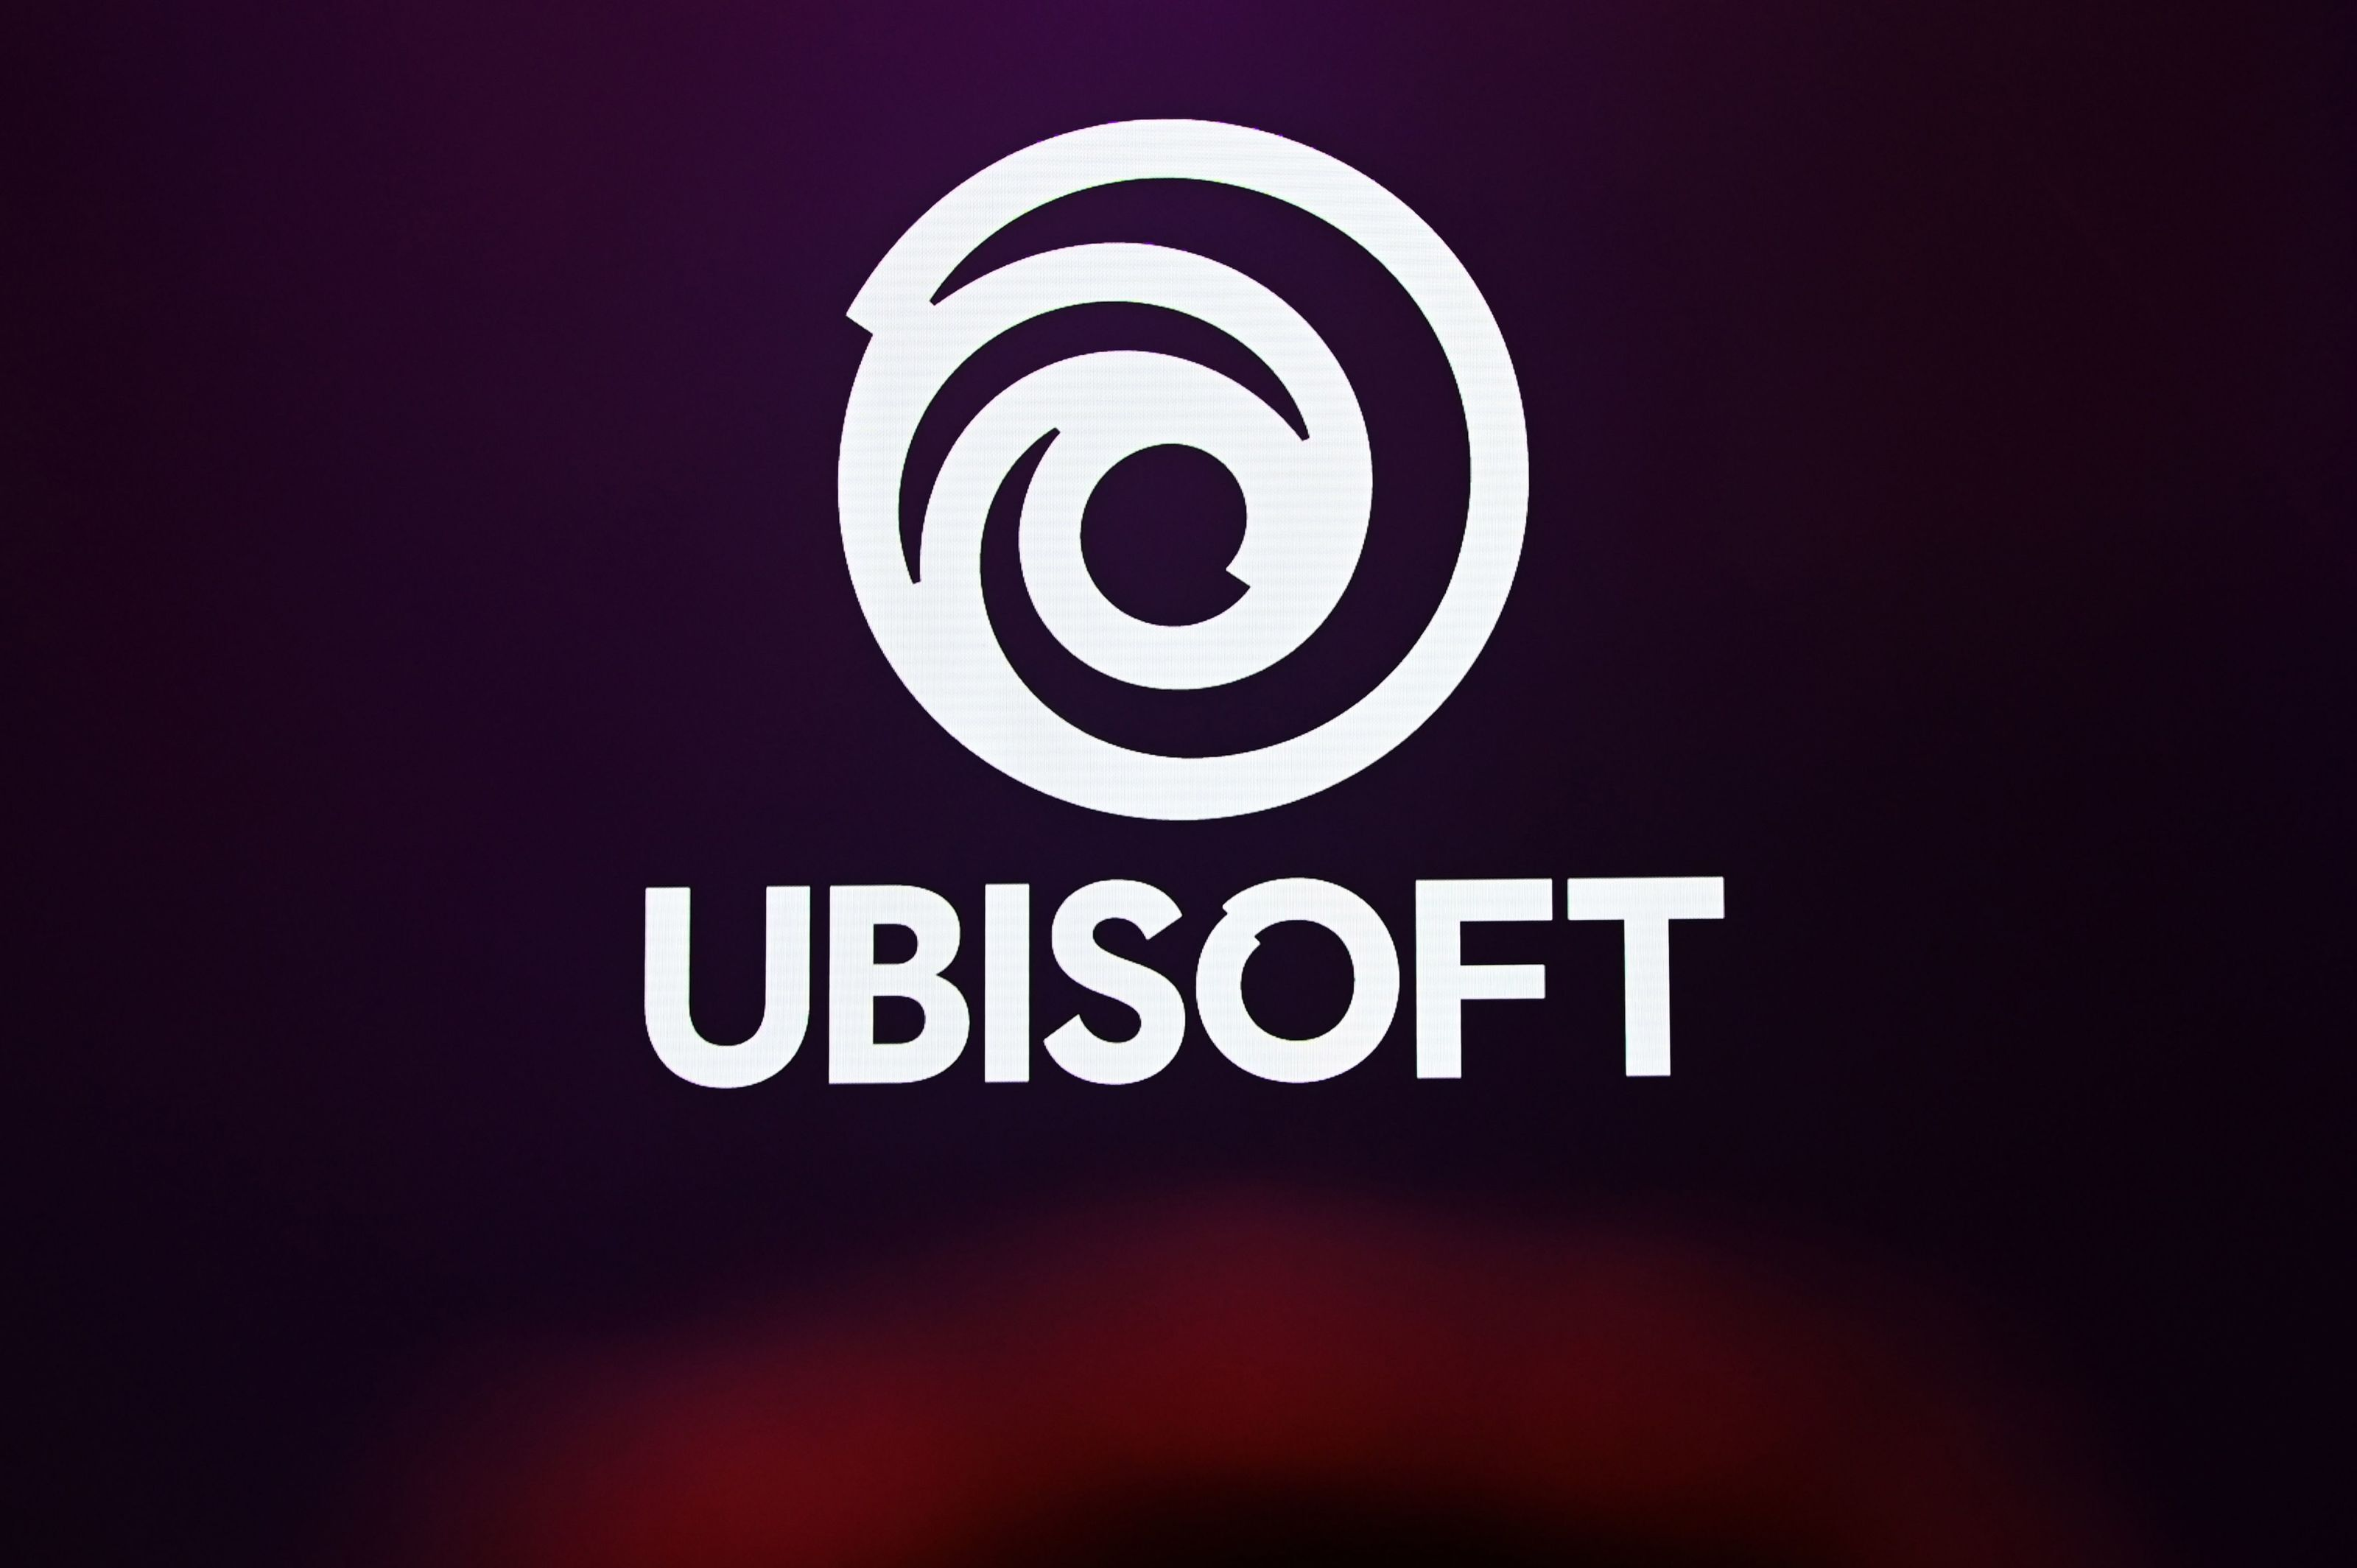 Ubisoft has plans to turn Watch Dogs, Rayman and more into animated TV series